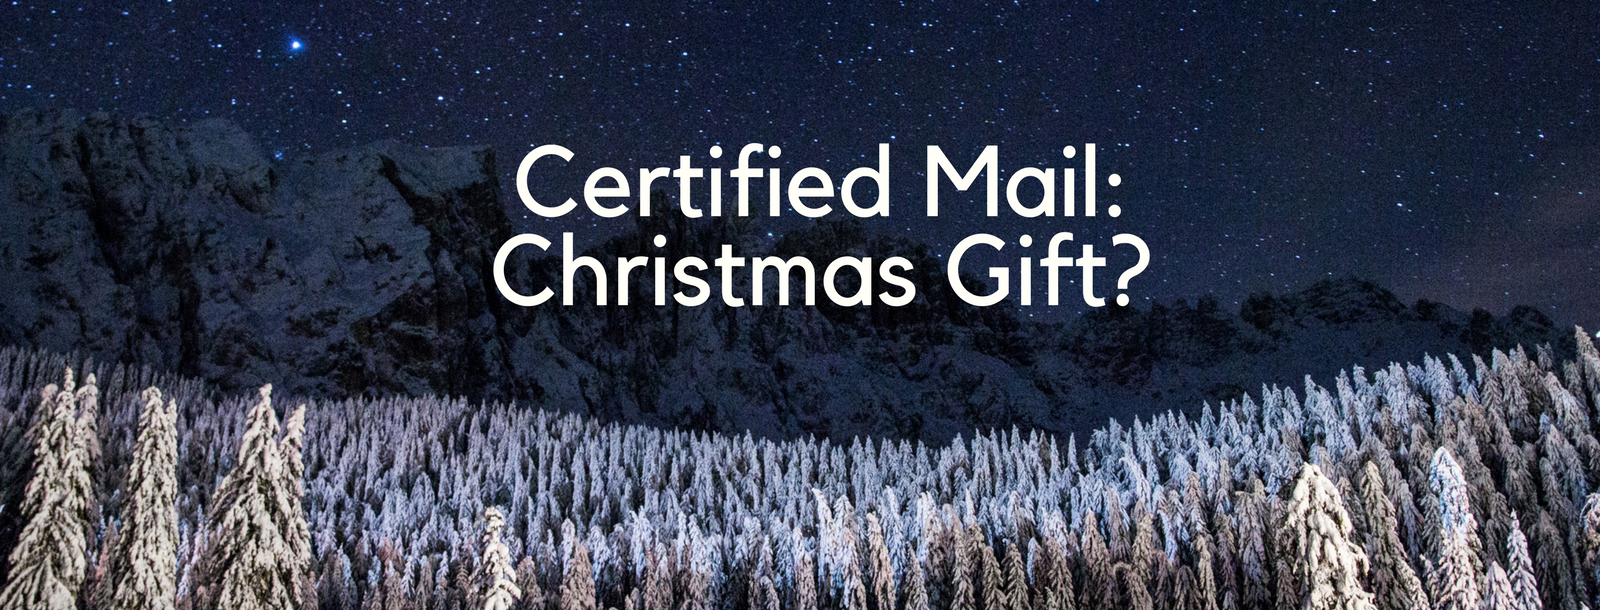 22 dec certified mail christmas gift